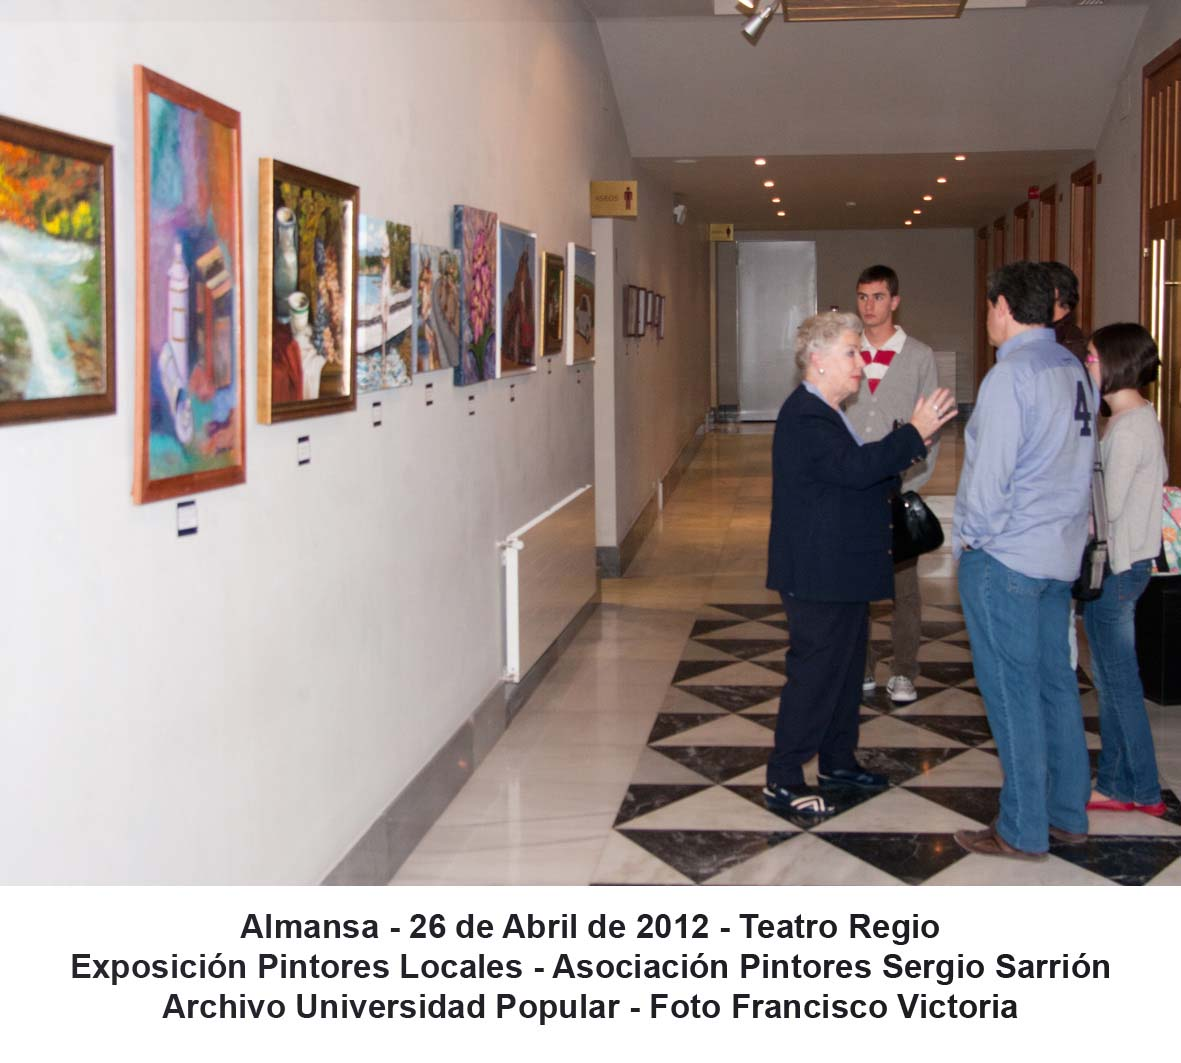 120426 ASOC PINTORES SERGIO SARRION 03